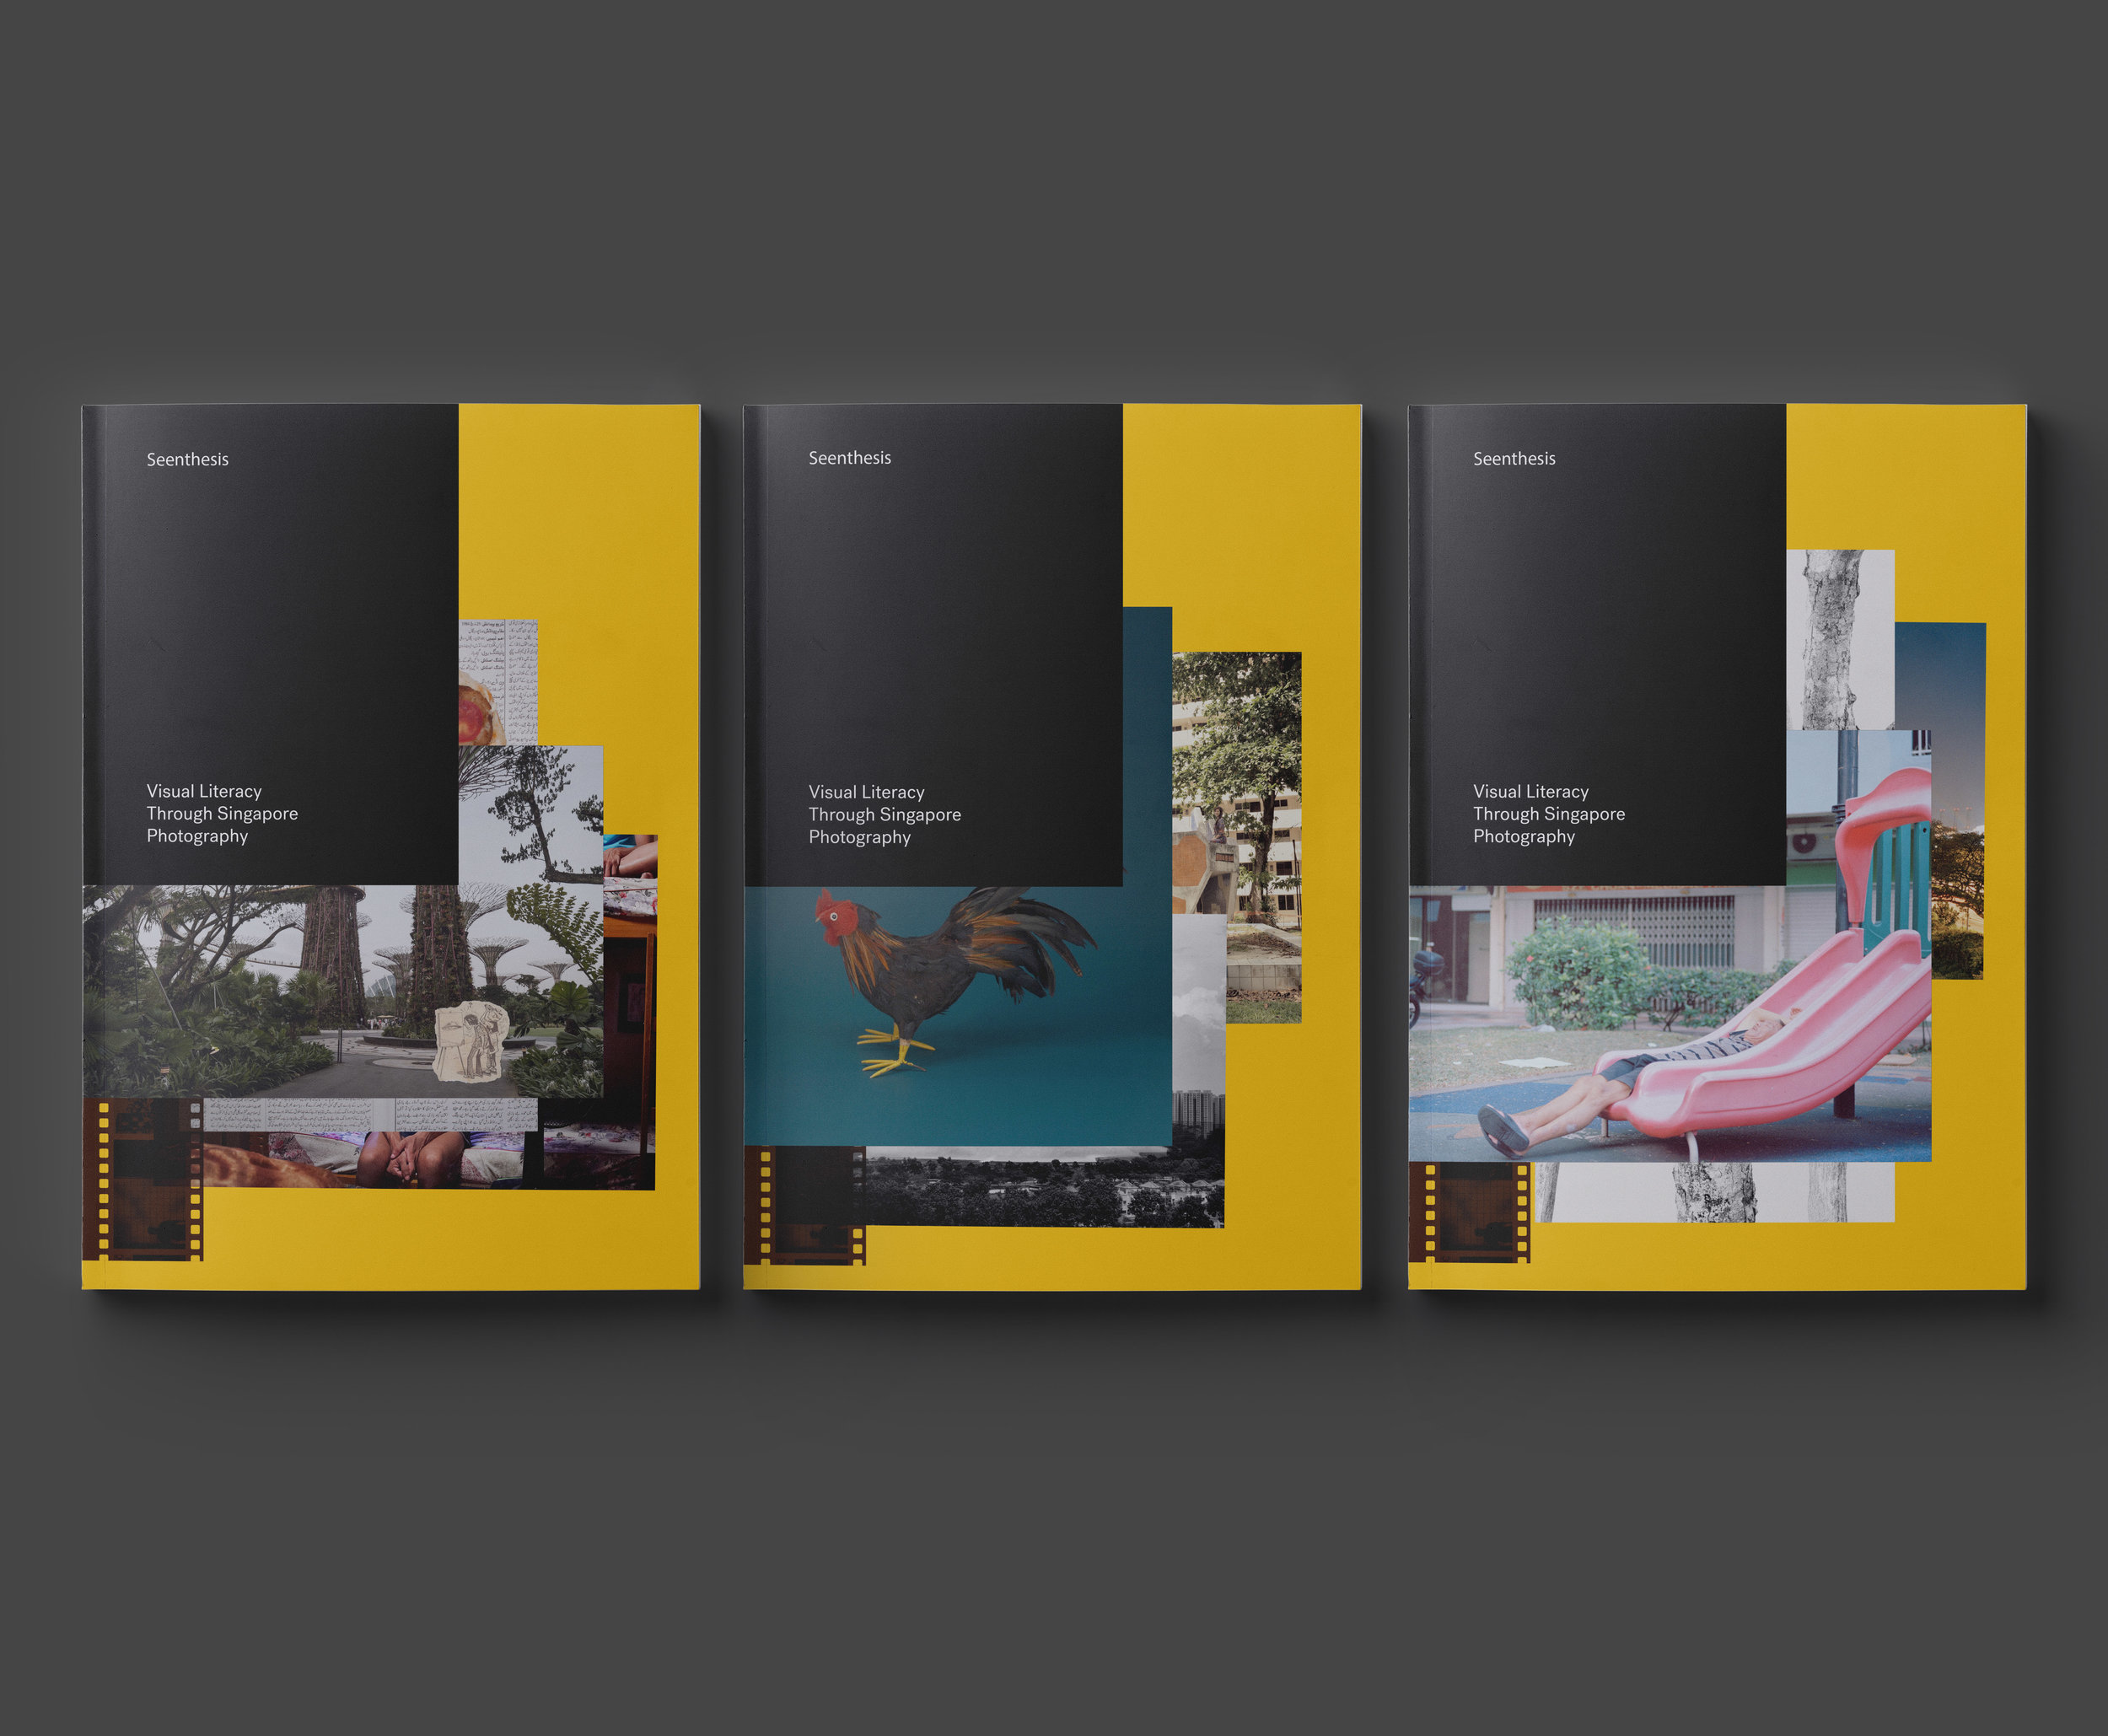 Variations of the front cover of 'Seenthesis: Visual Literacy through Singapore Photography'. Image courtesy of DECK Singapore.